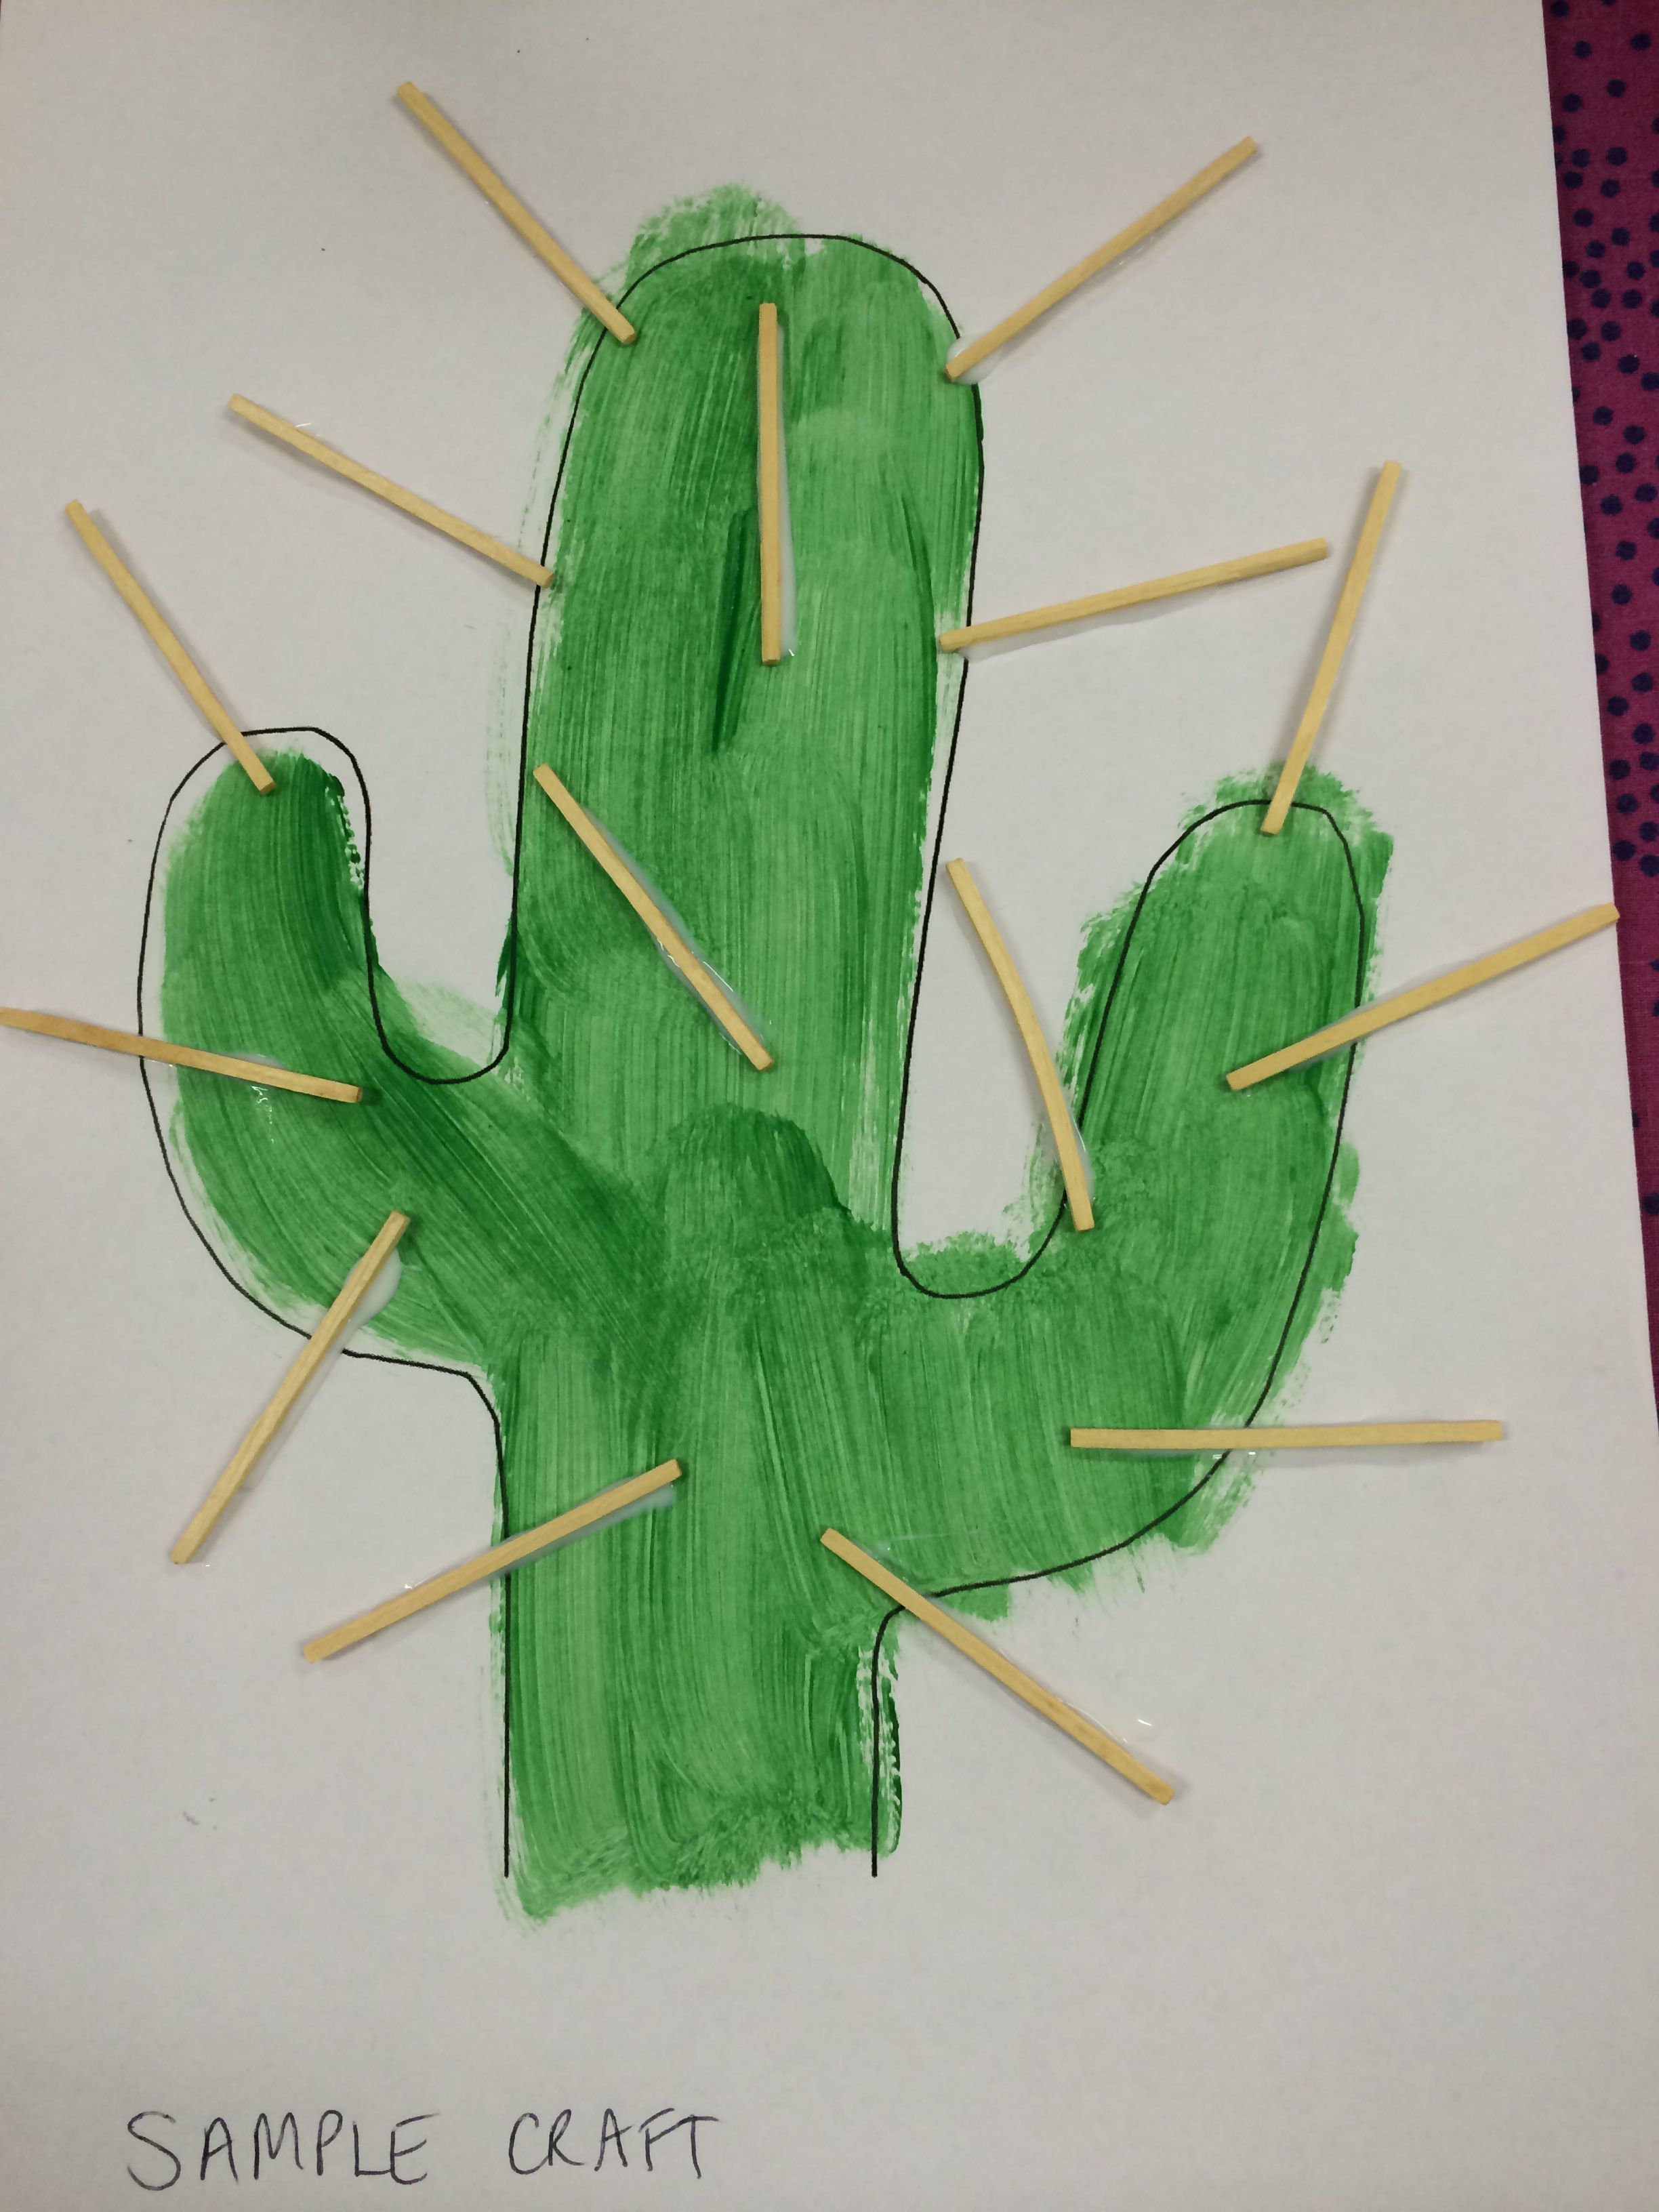 Western arts and crafts - Wild West Craft Made By Painting A Cactus Template Gluing On Match Sticks With Pva